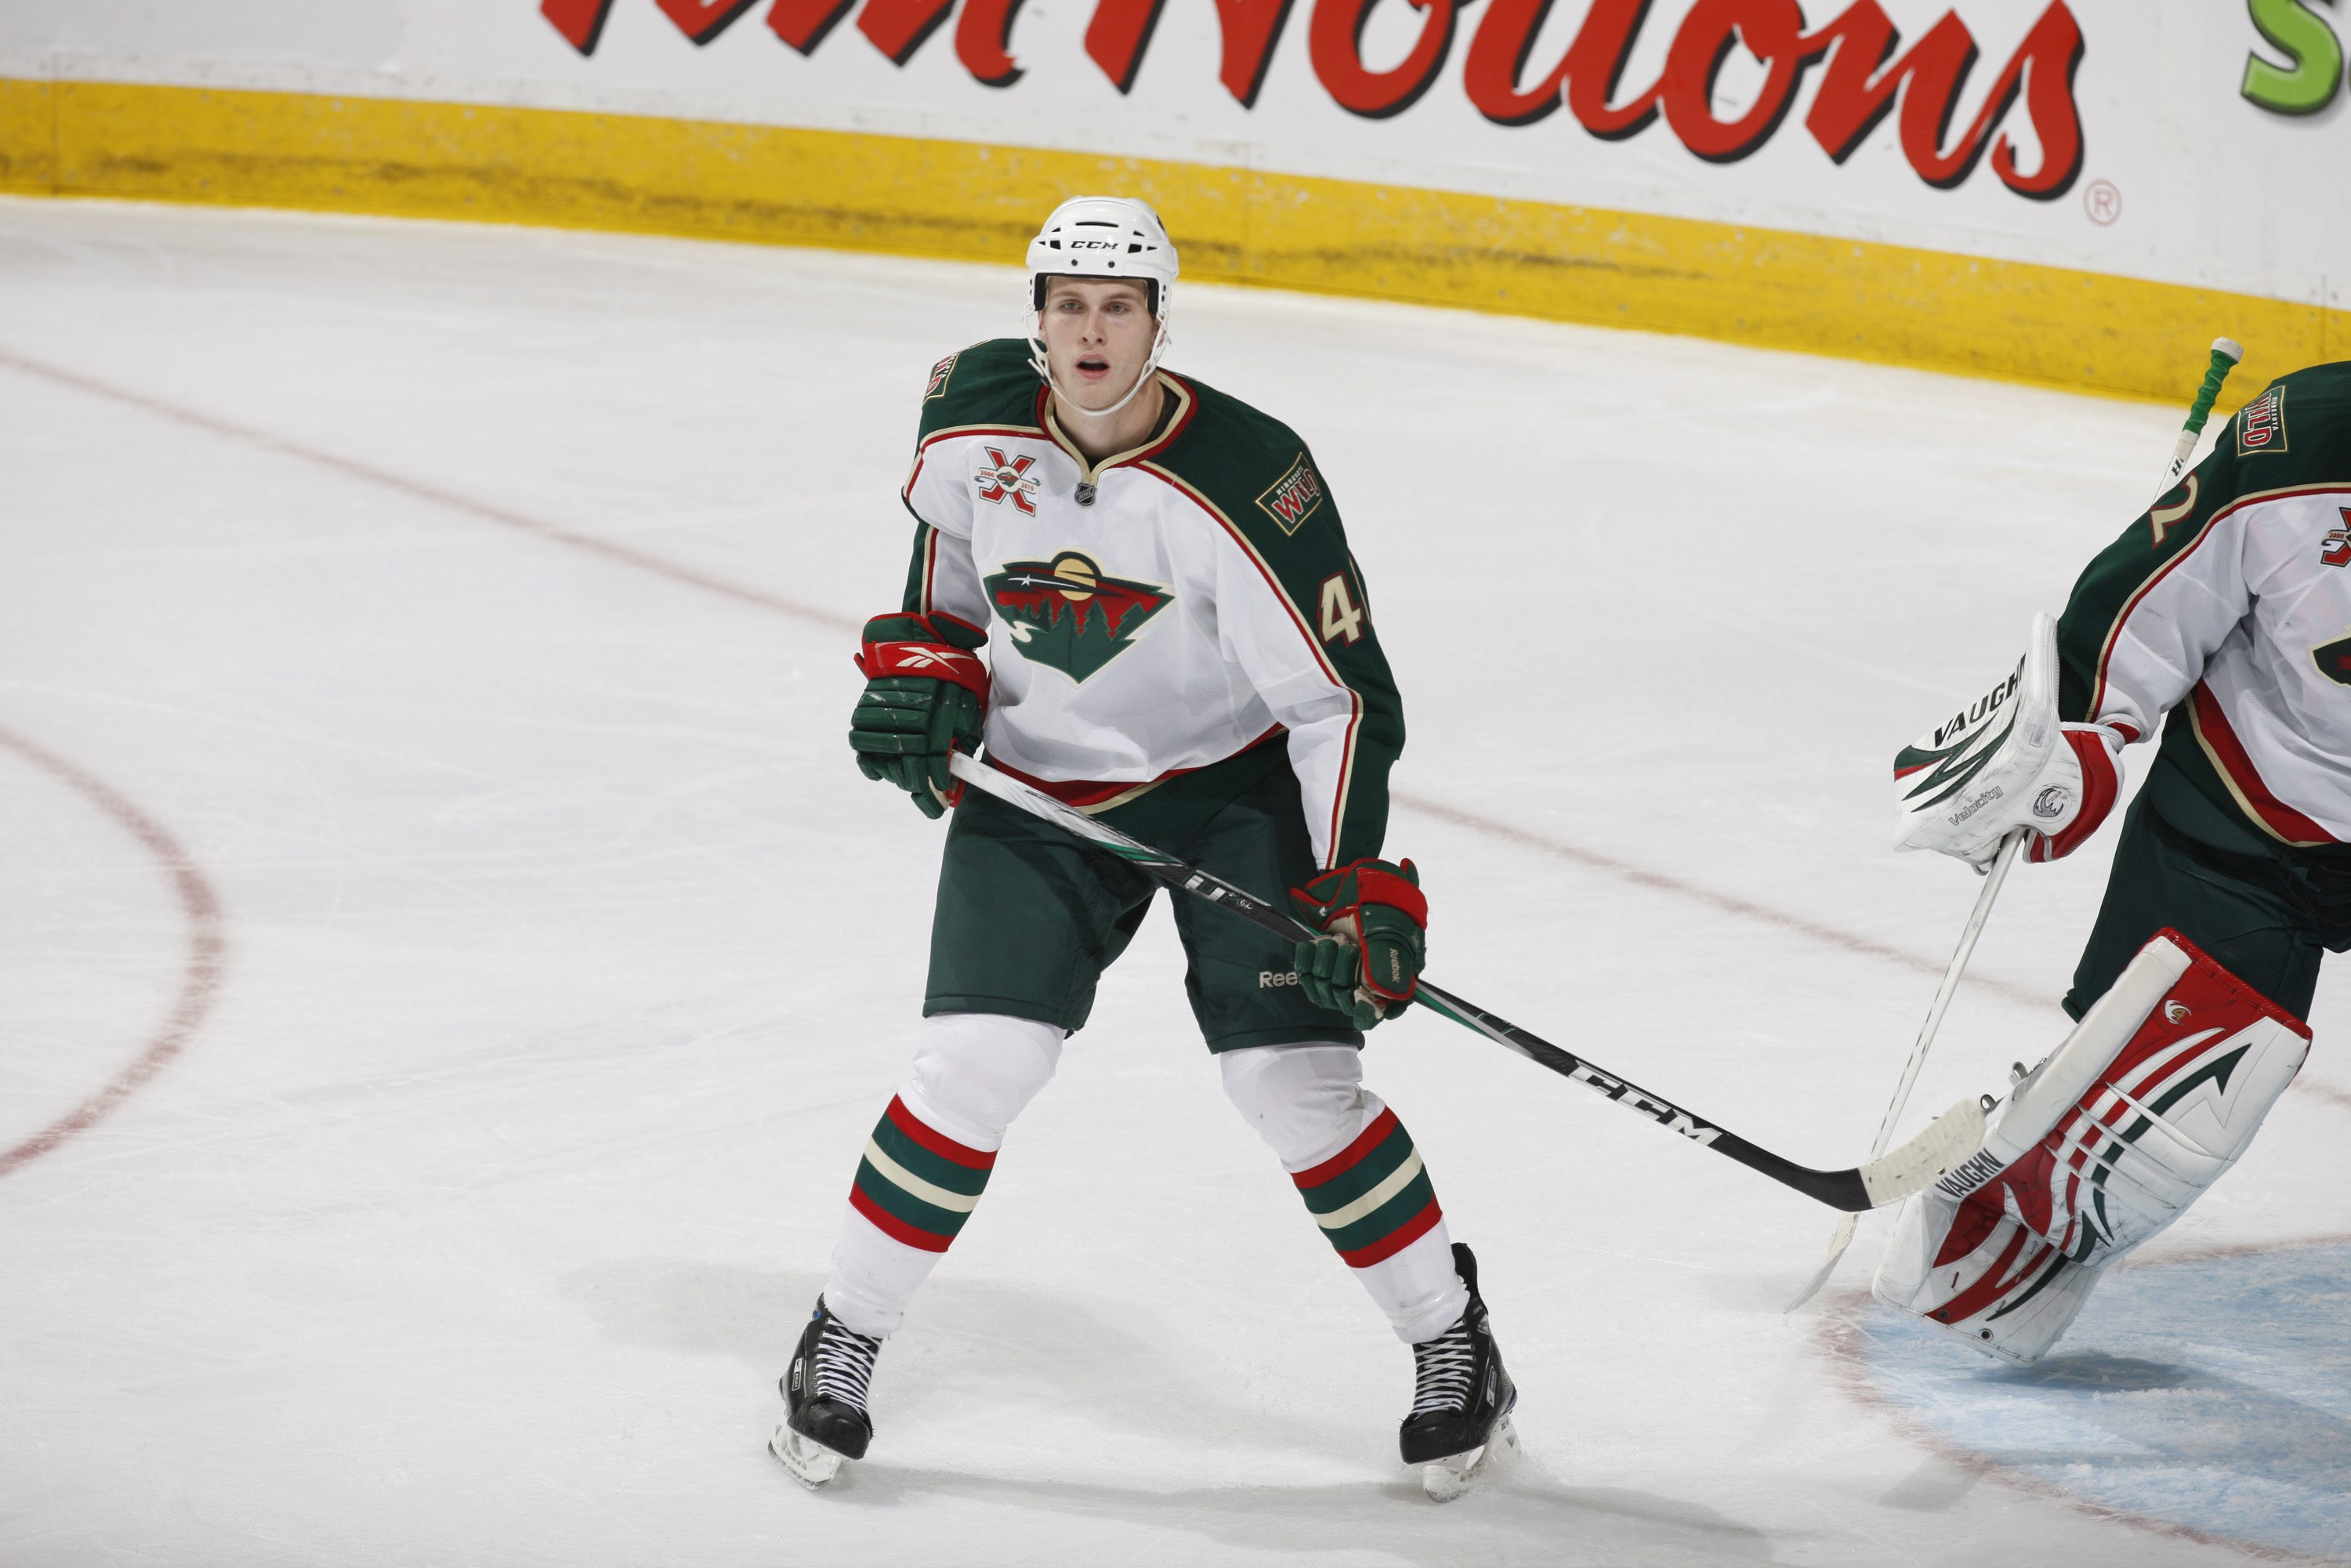 EDMONTON, CANADA - OCTOBER 21: Justin Falk #41 of the Minnesota Wild skates against the Edmonton Oilers on October 21, 2010 at Rexall Place in Edmonton, Alberta, Canada. (Photo by Dale MacMillan/Getty Images)